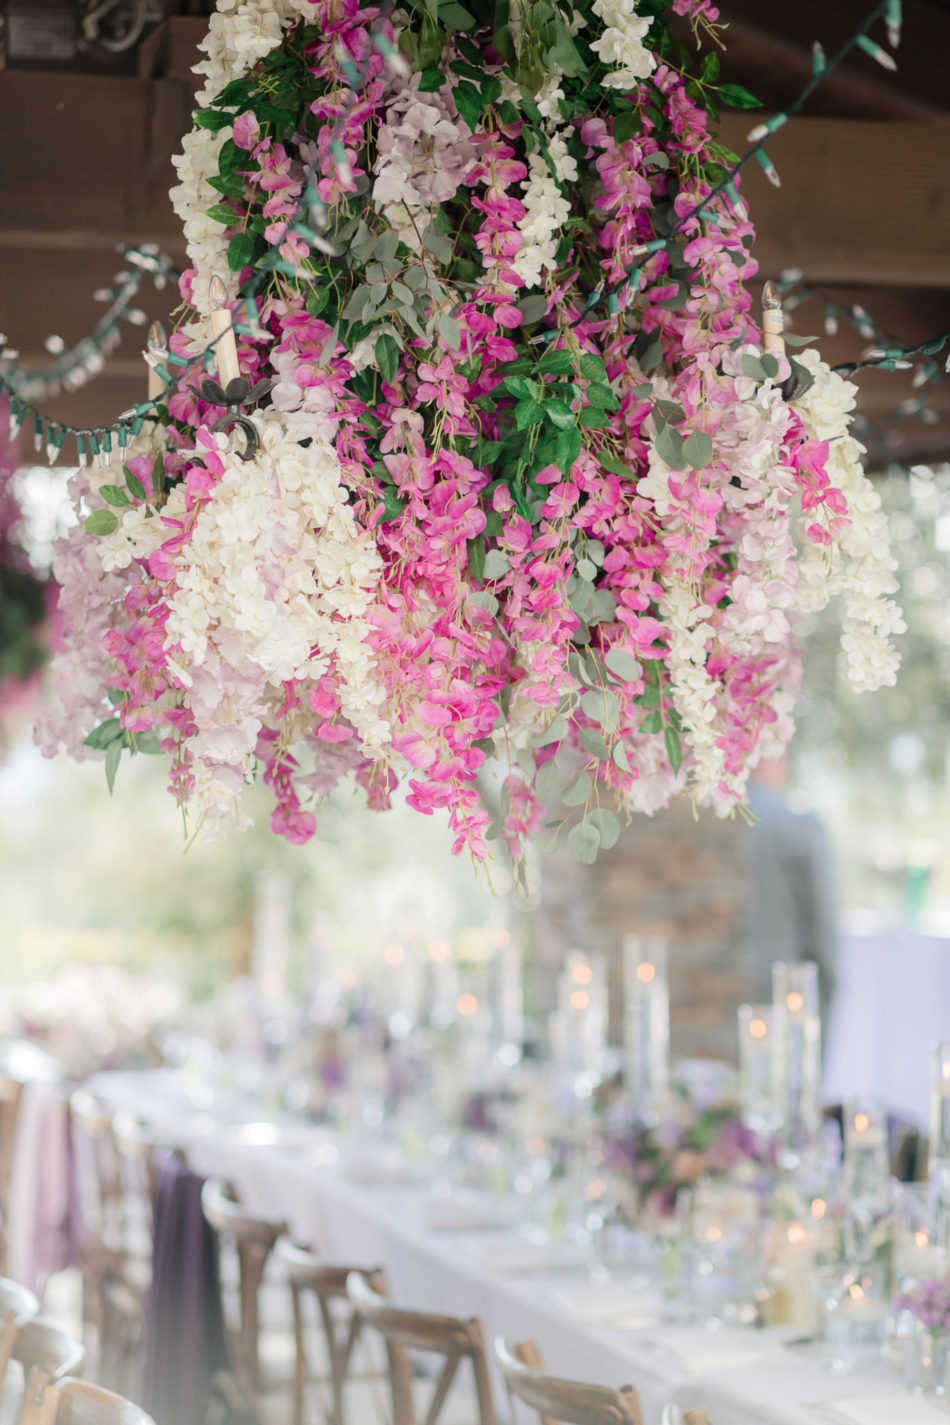 pink floral ceiling, outdoor reception, pink floral decor, floral design, florist, wedding florist, wedding flowers, orange county weddings, orange county wedding florist, orange county florist, orange county floral design, flowers by cina